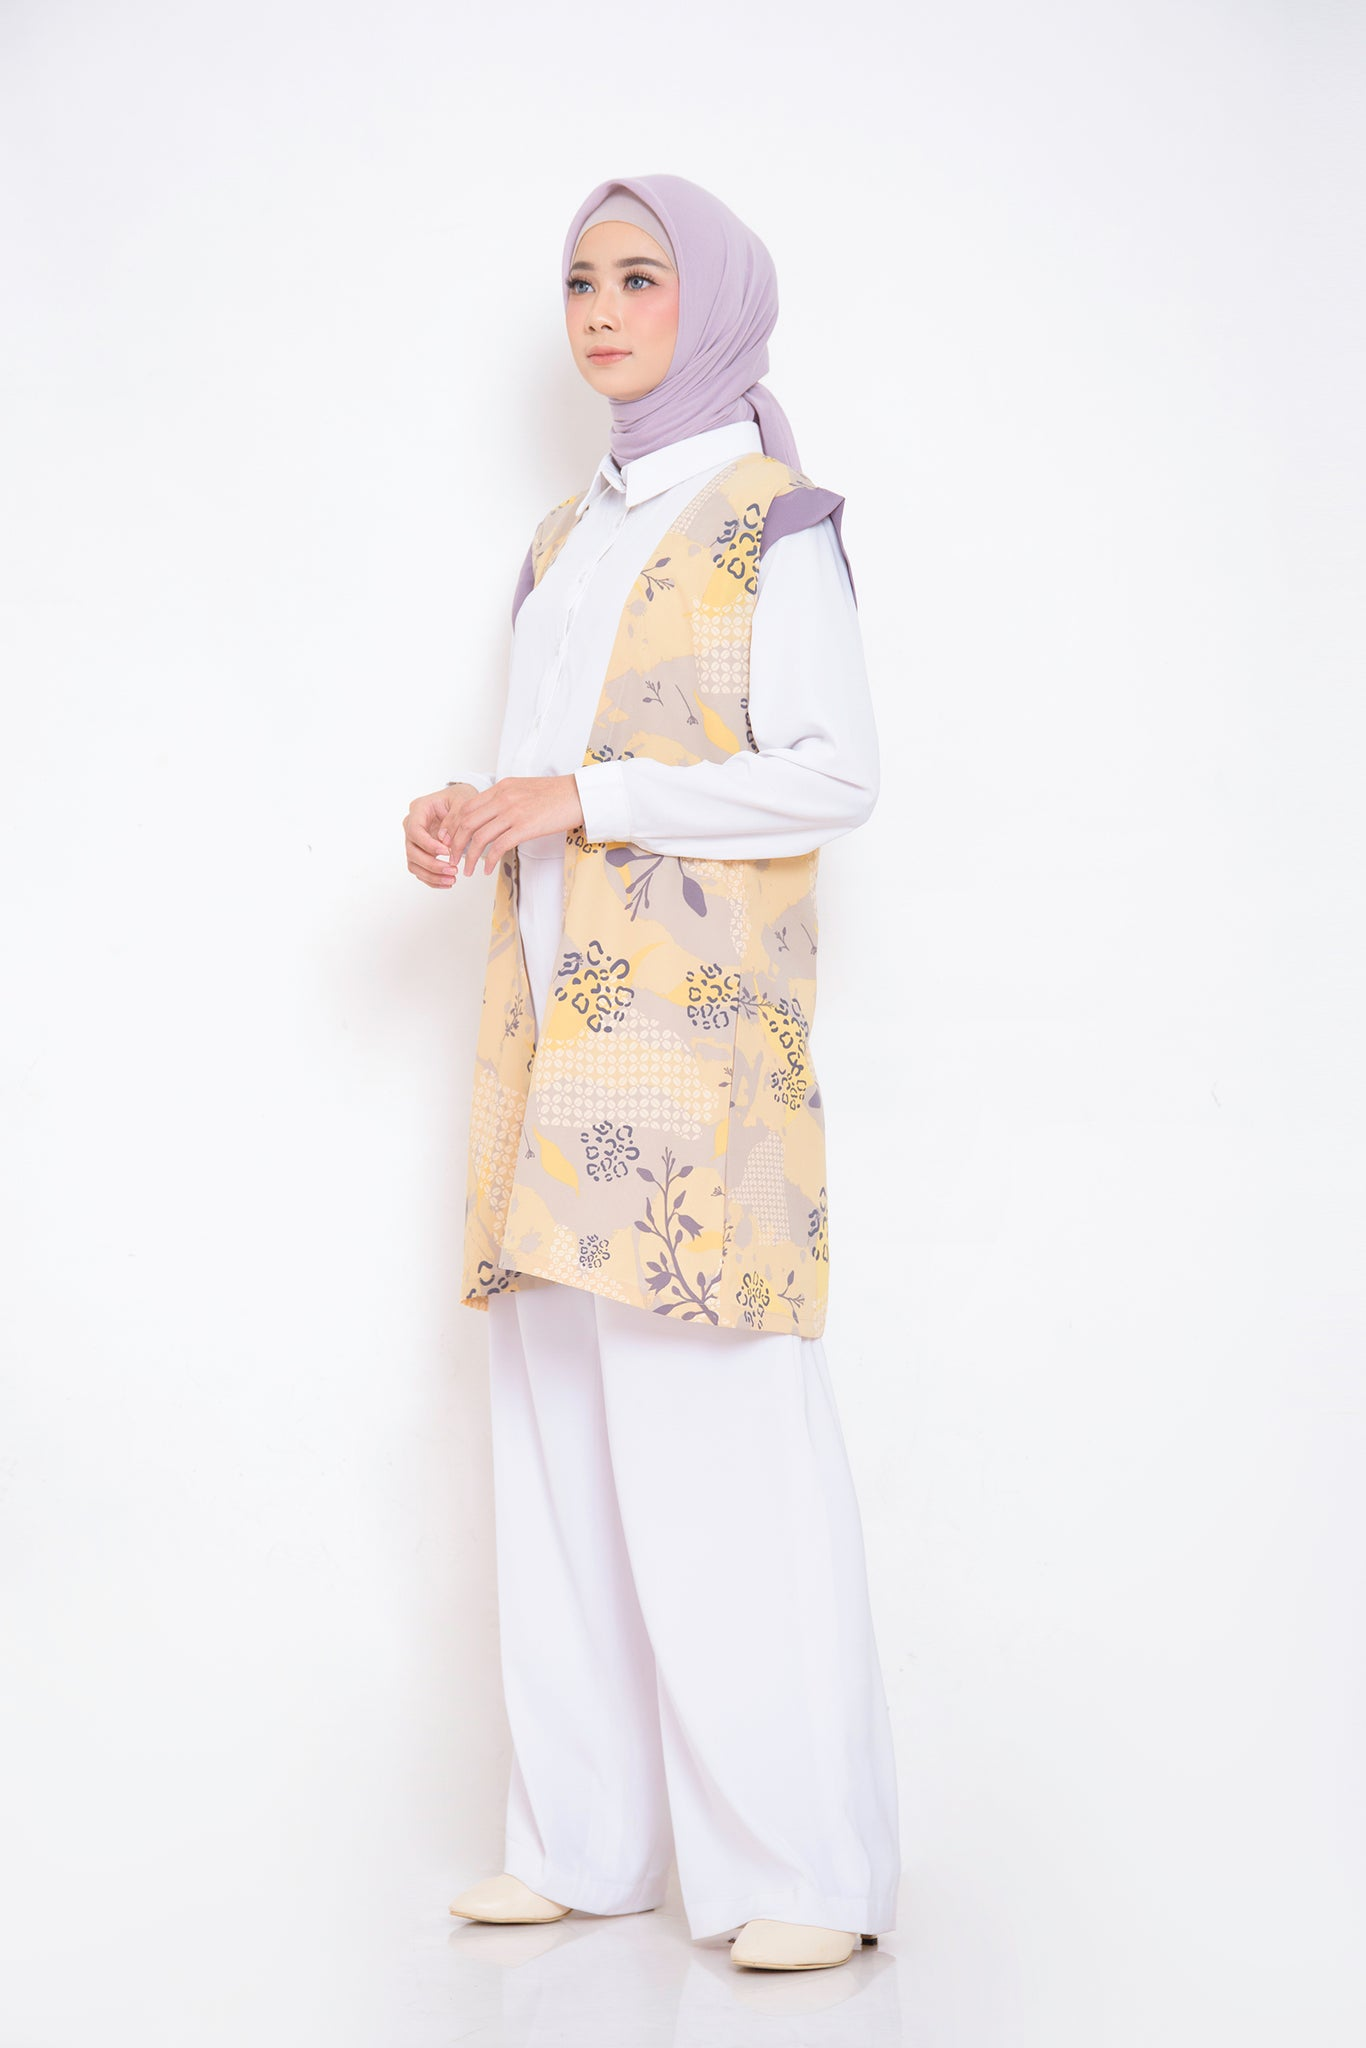 ZM - Melly Cream Outer - Jelita Indonesia - Edisi Sidikalang